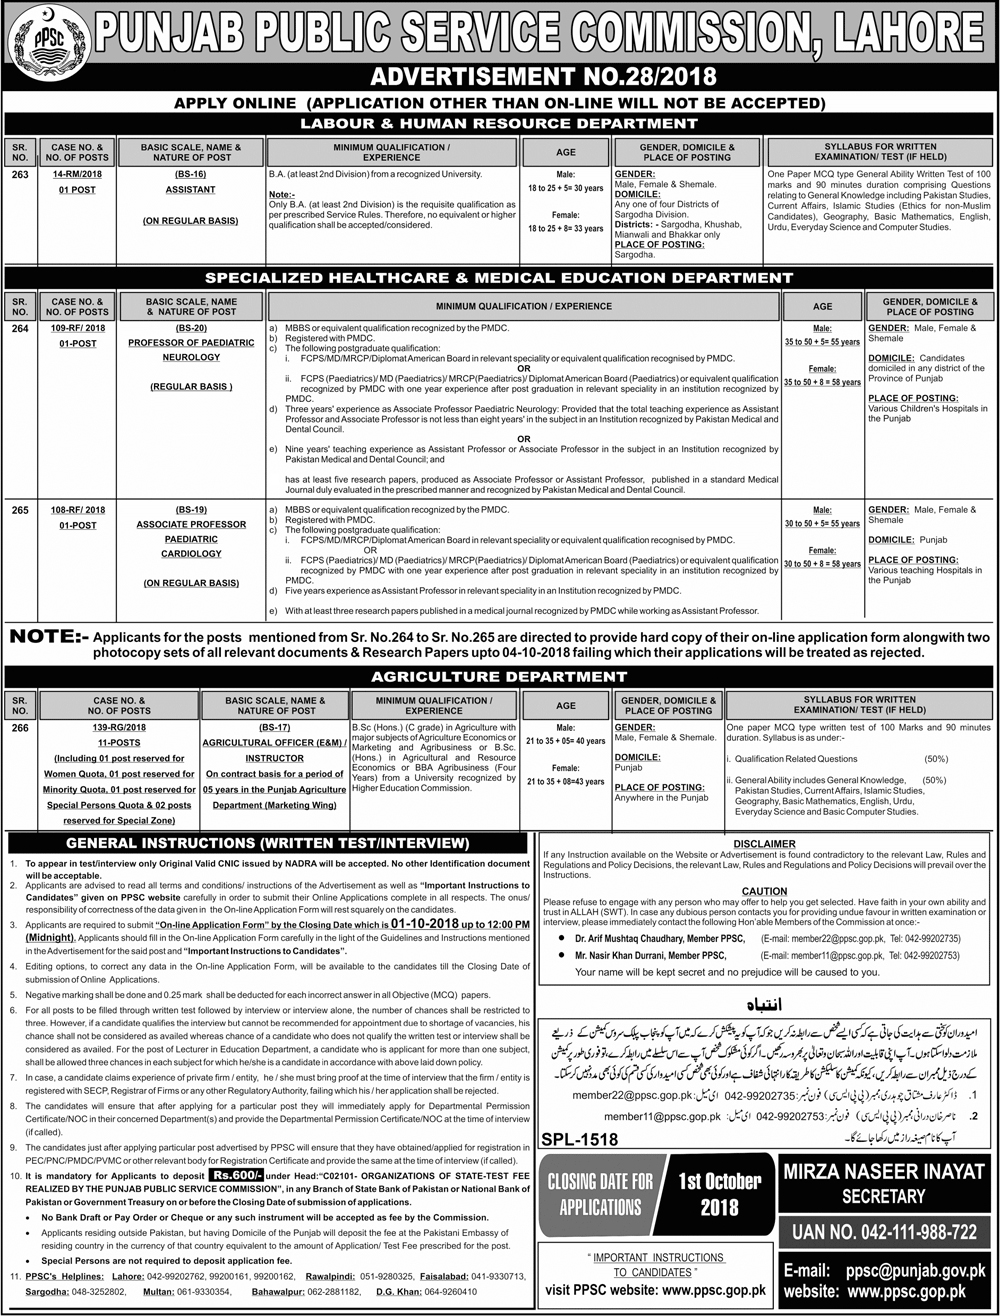 Latest Vacancies Announced in PPSC.GOP.PK Punjab Public Service Commission PPSC 16 September 2018